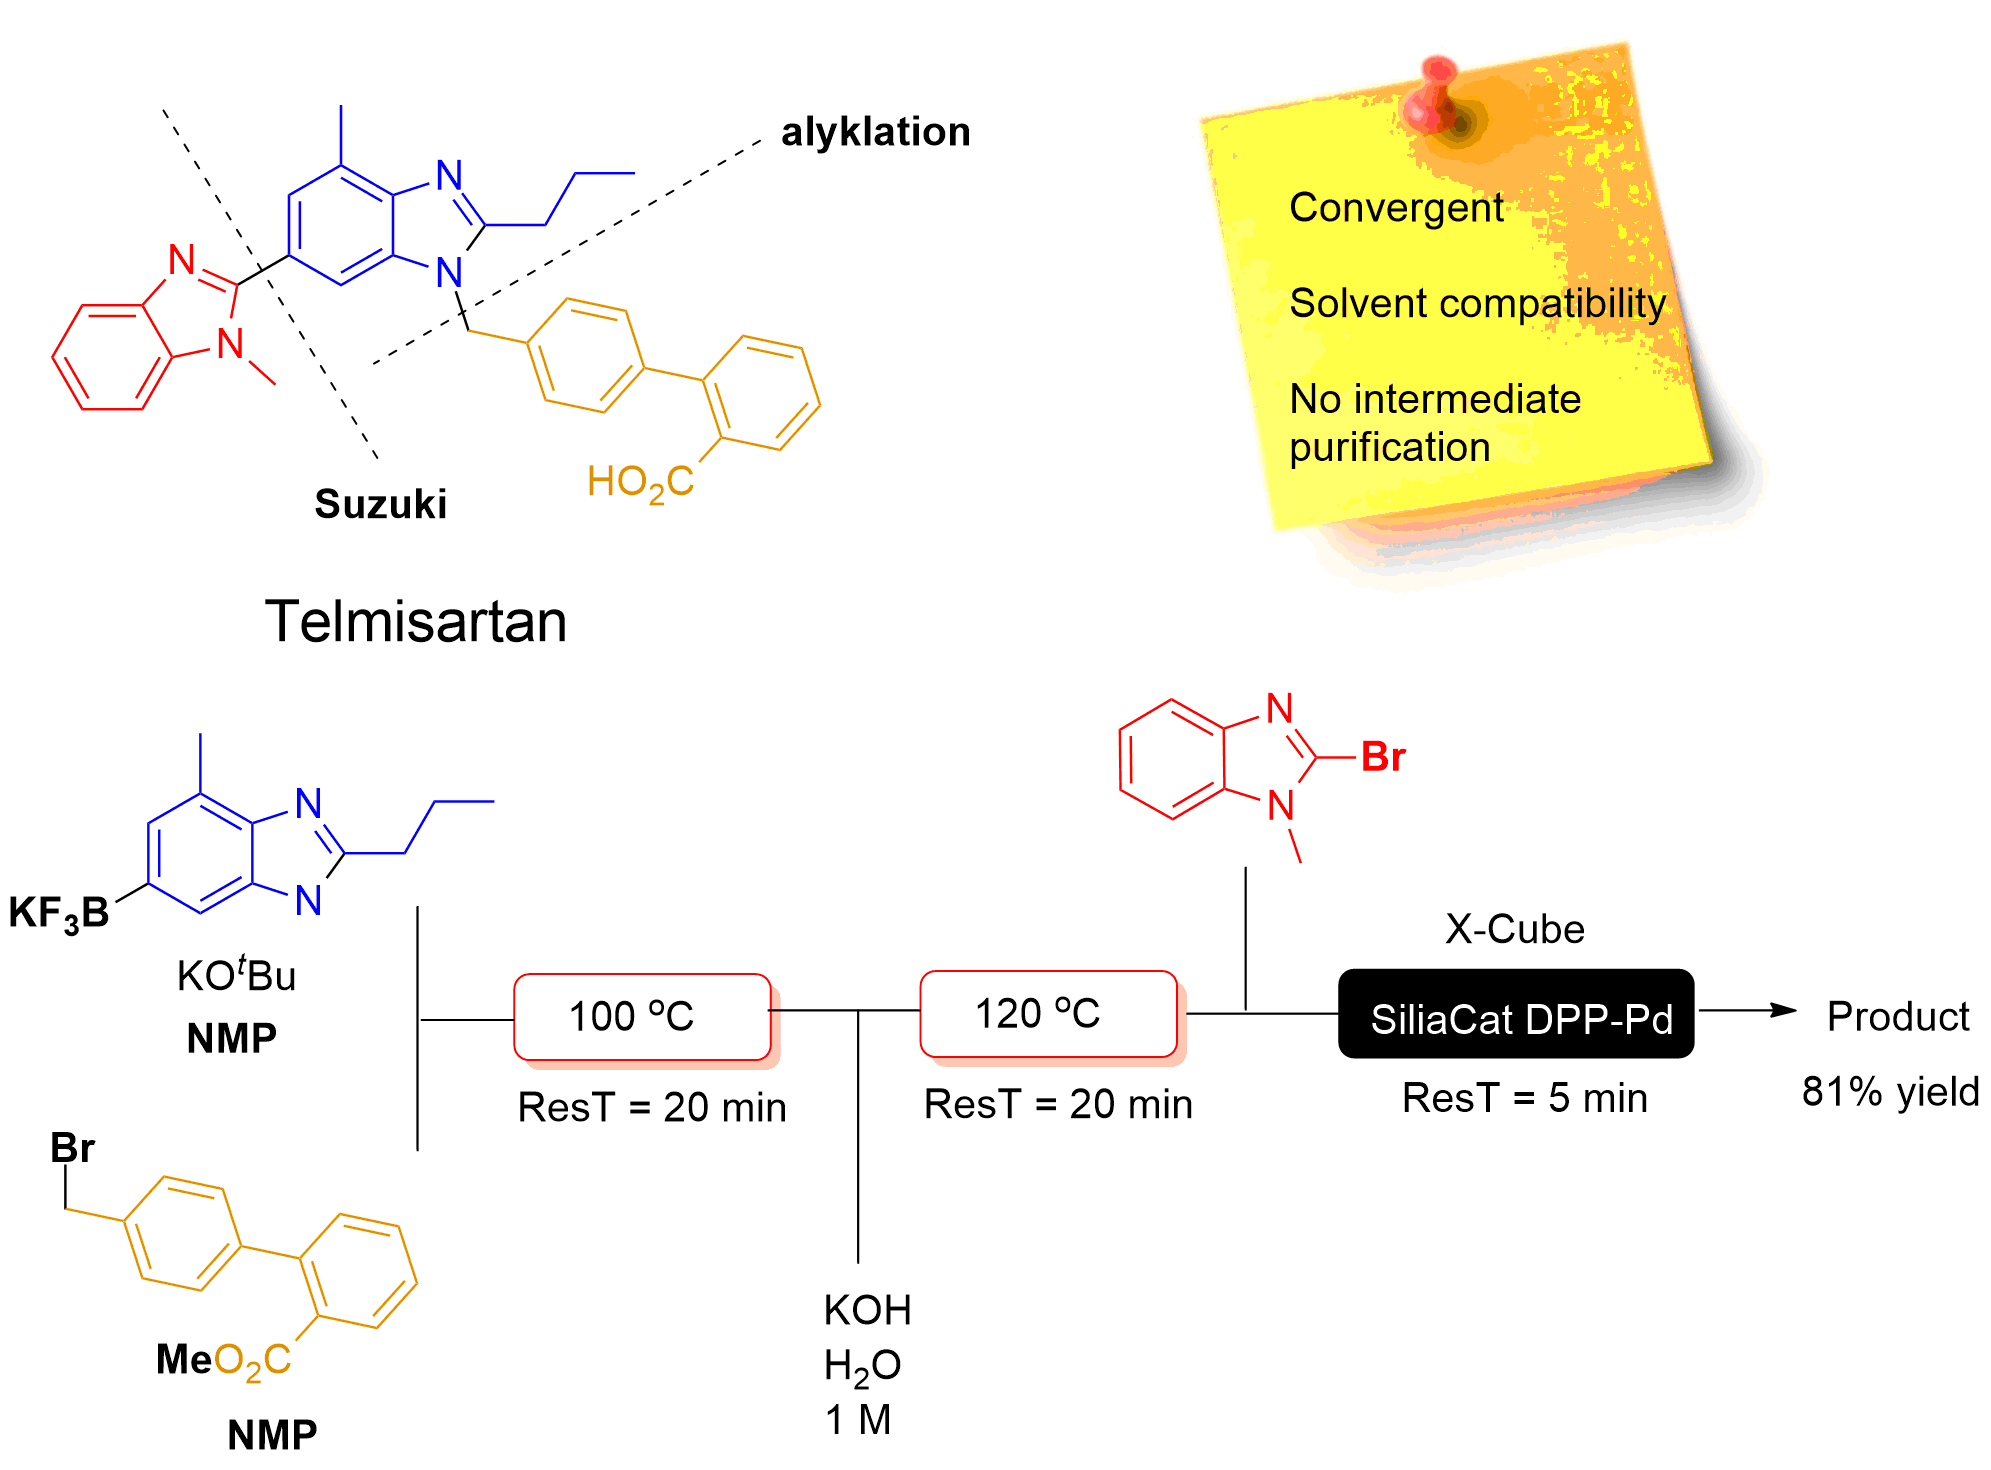 hight resolution of  university have reported an elegant three step convergent continuous flow process for the synthesis of telmisartan 1 in the journal of flow chemistry